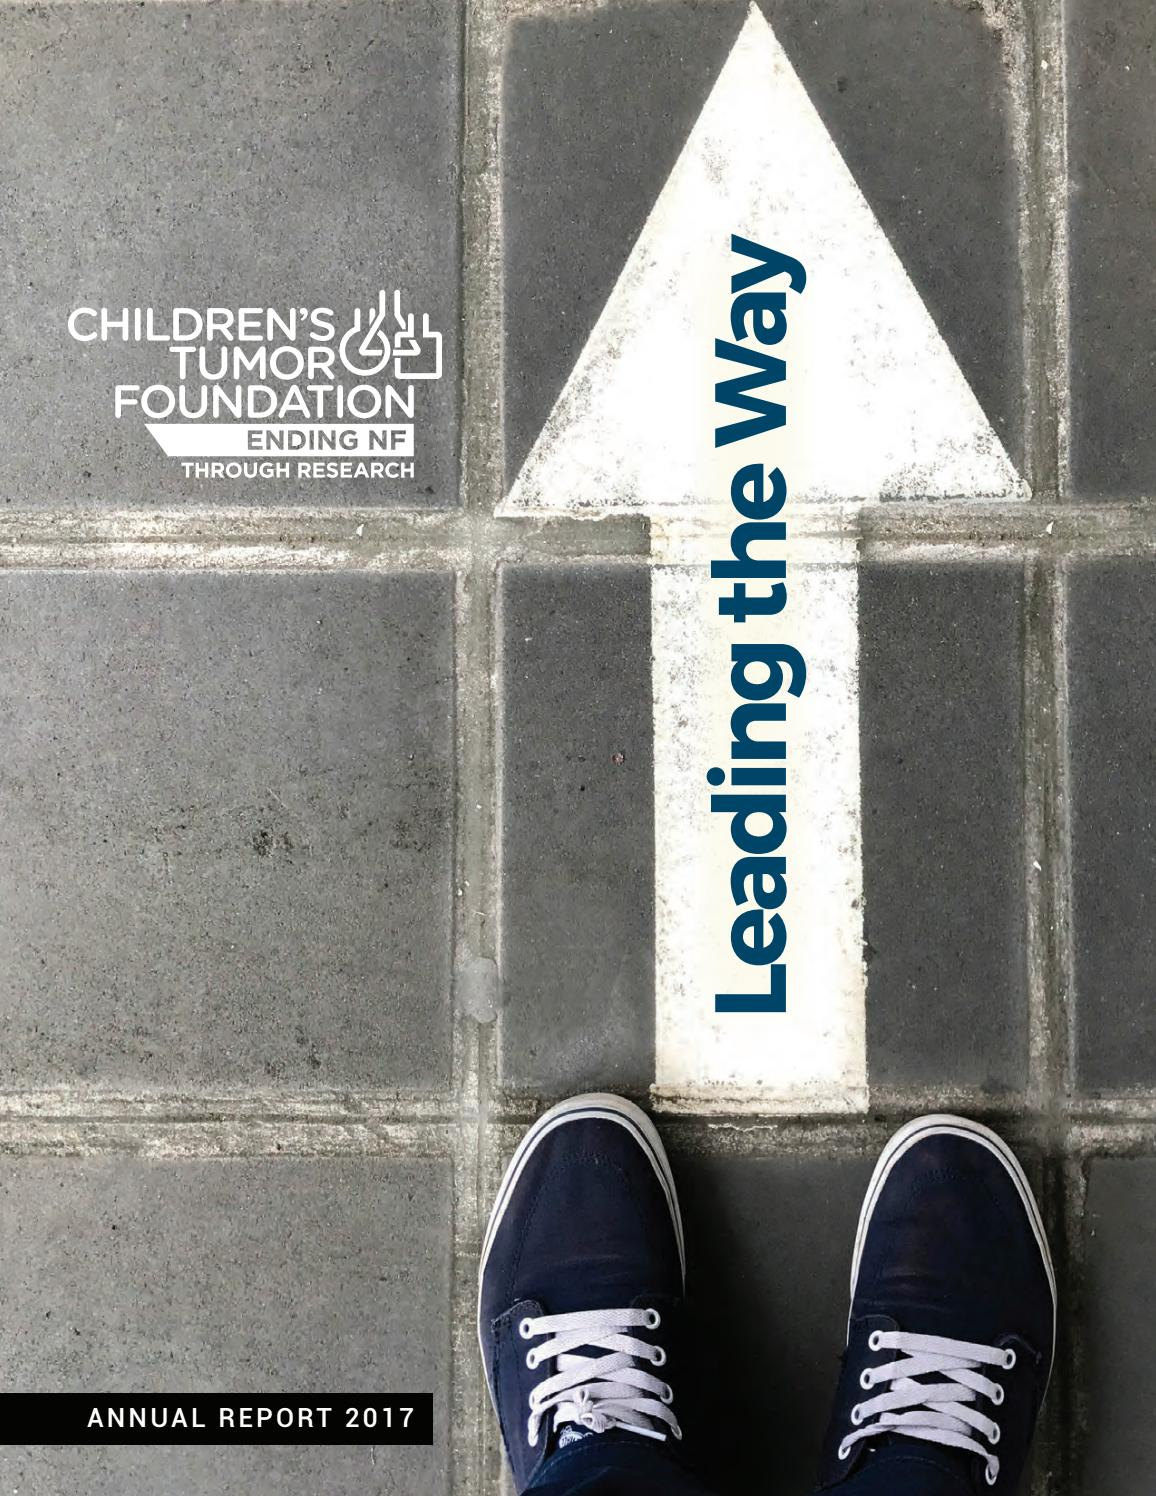 Children's Tumor Foundation 2017 Annual Report by Children's